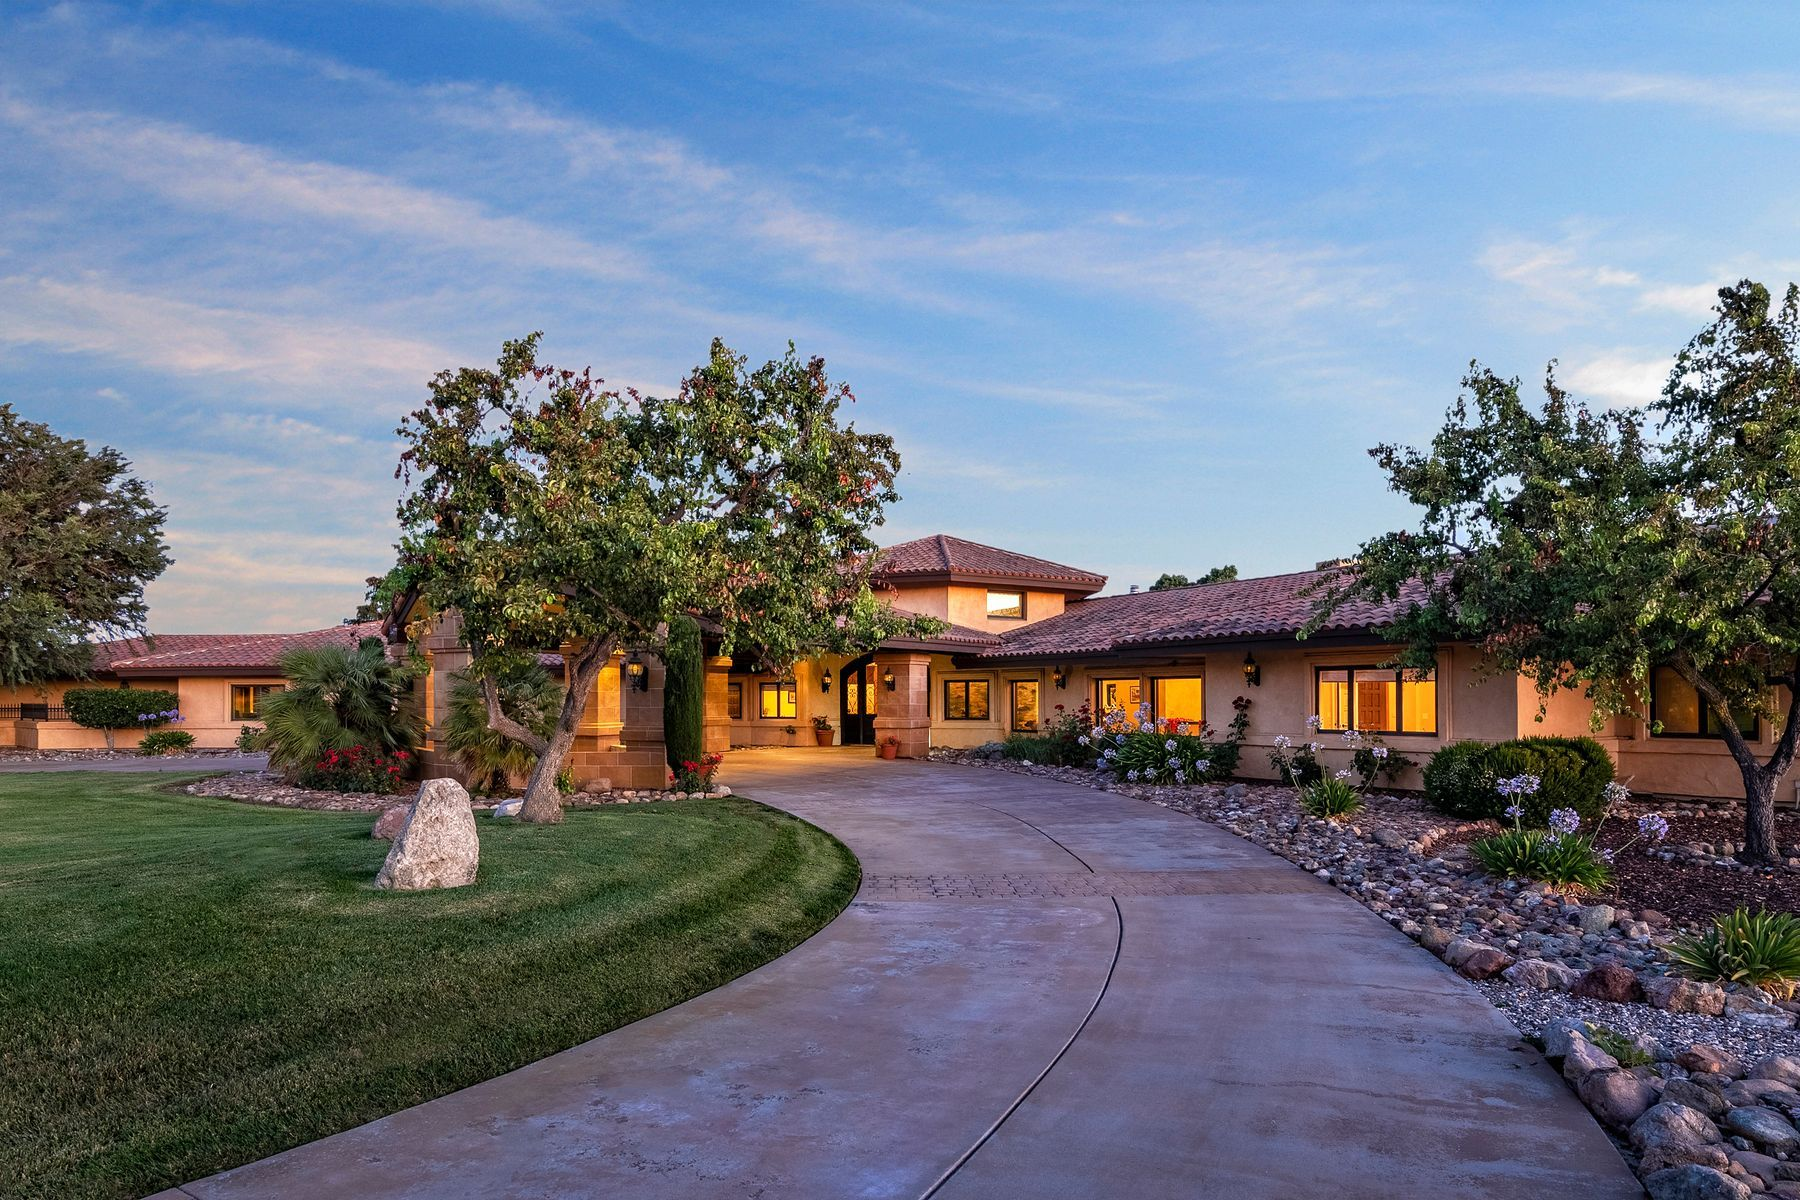 Vineyard Real Estate for Sale at Dramatic Happy Canyon Ranch 1920 Westerly Road Santa Ynez, California 93460 United States